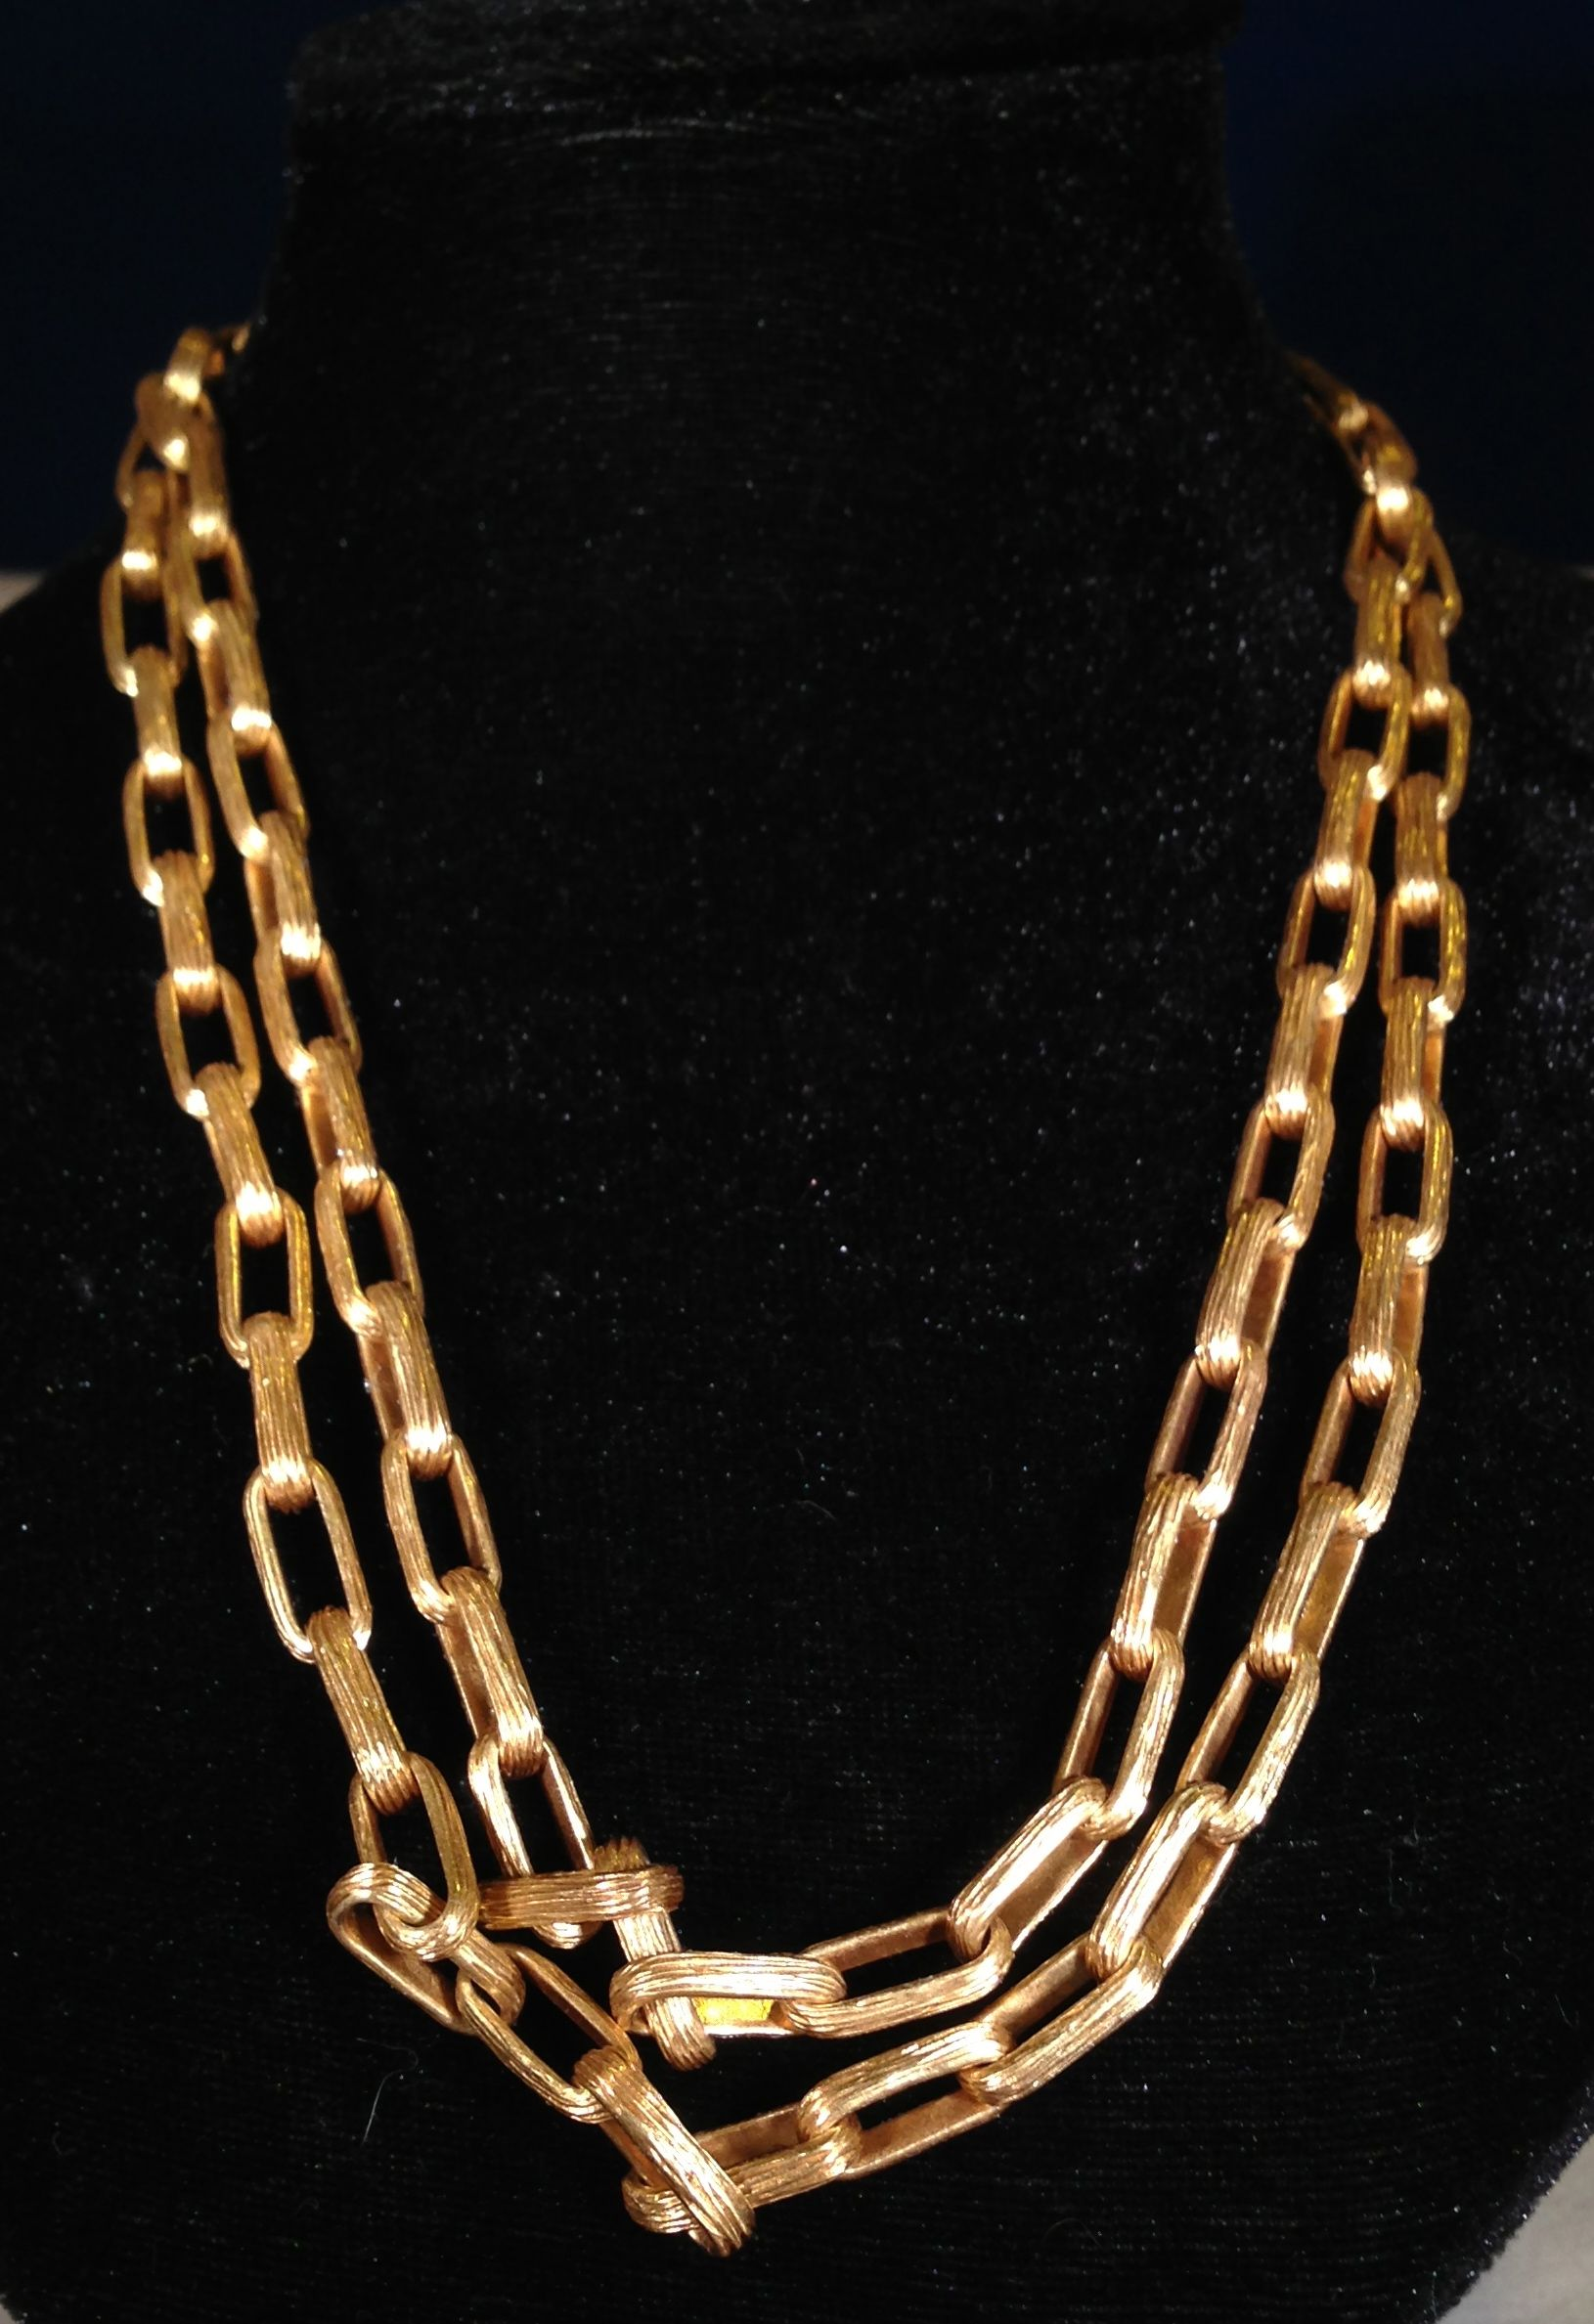 demand gold necklace necklaces kim pinterest in coin julie vos kardashian pin